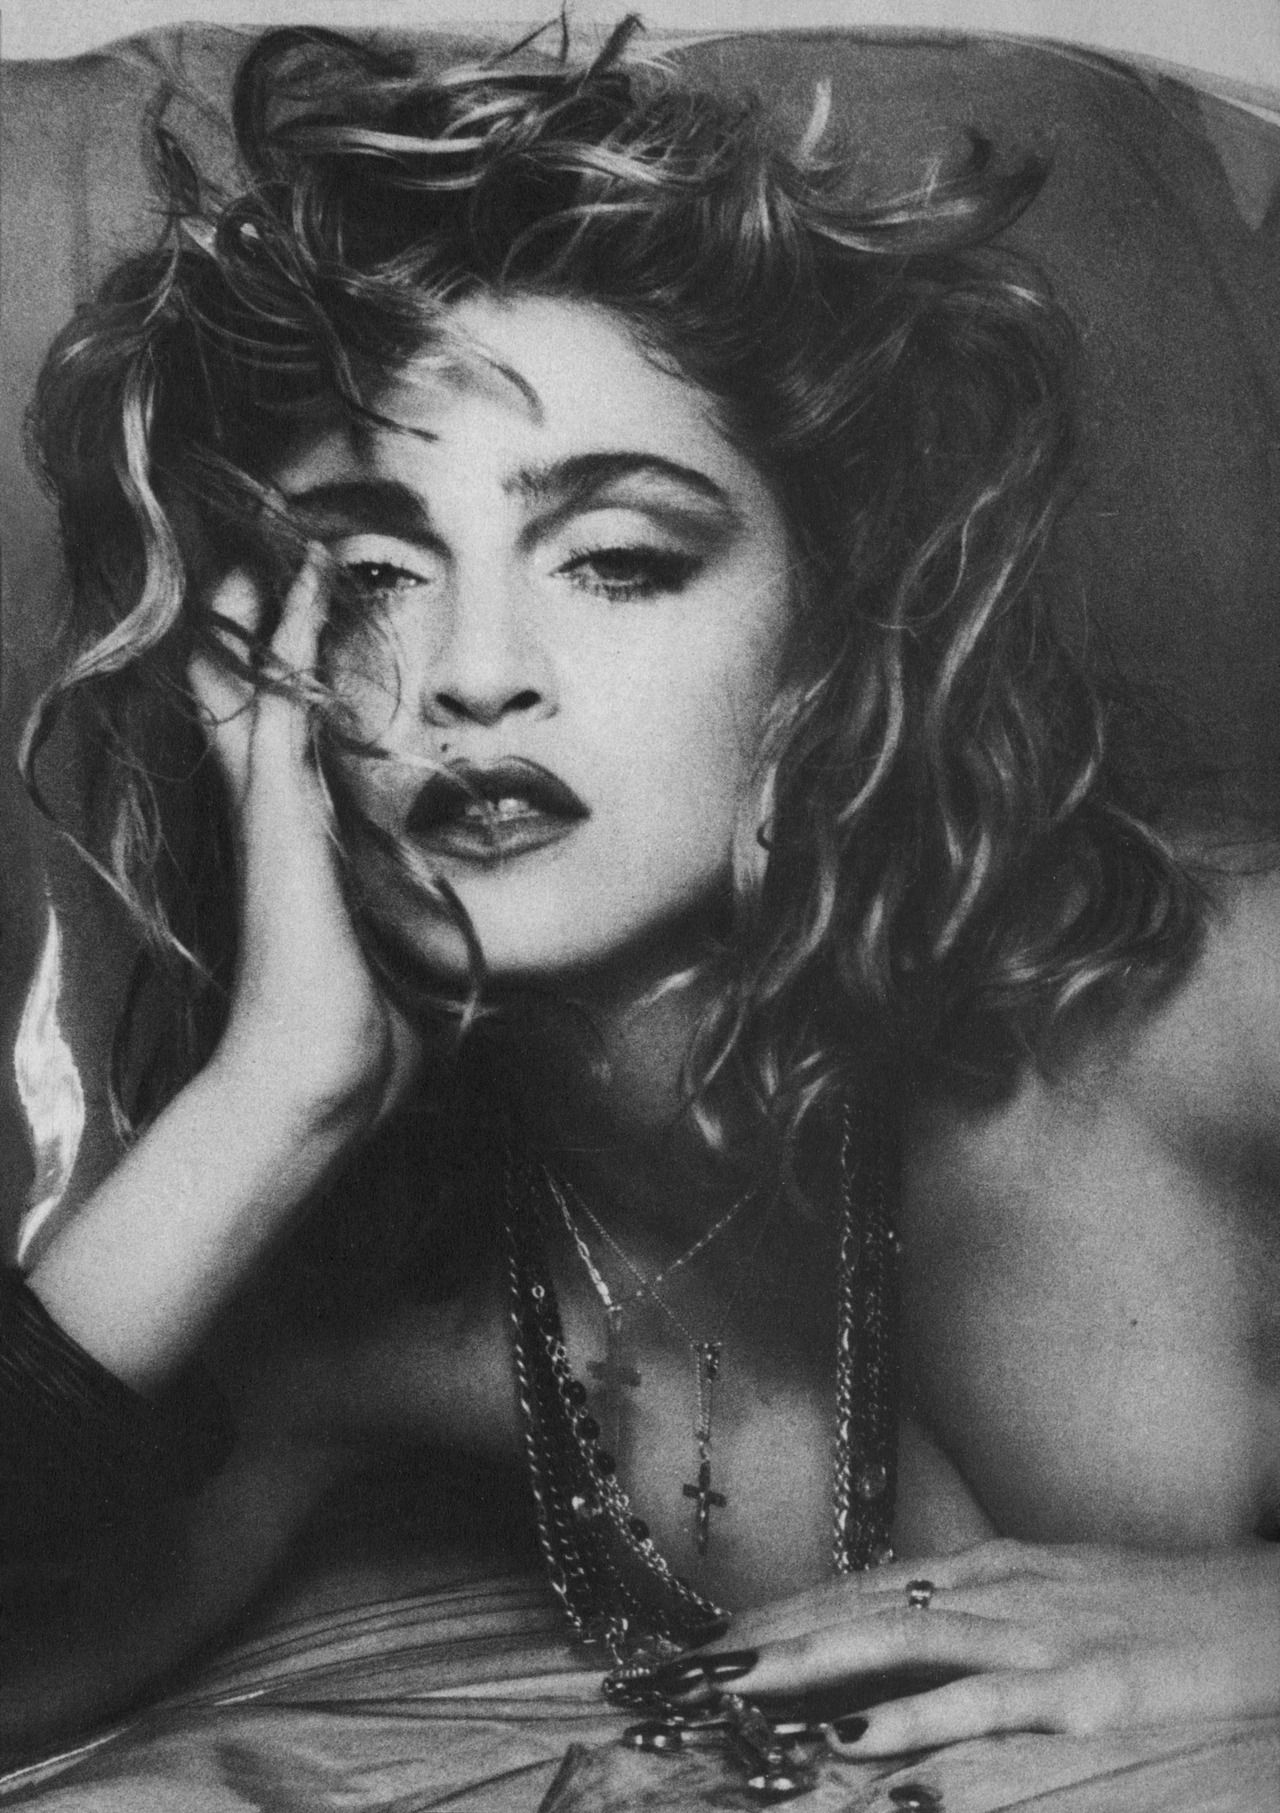 Pud Whacker's Madonna Scrapbook Tumblr: Photo